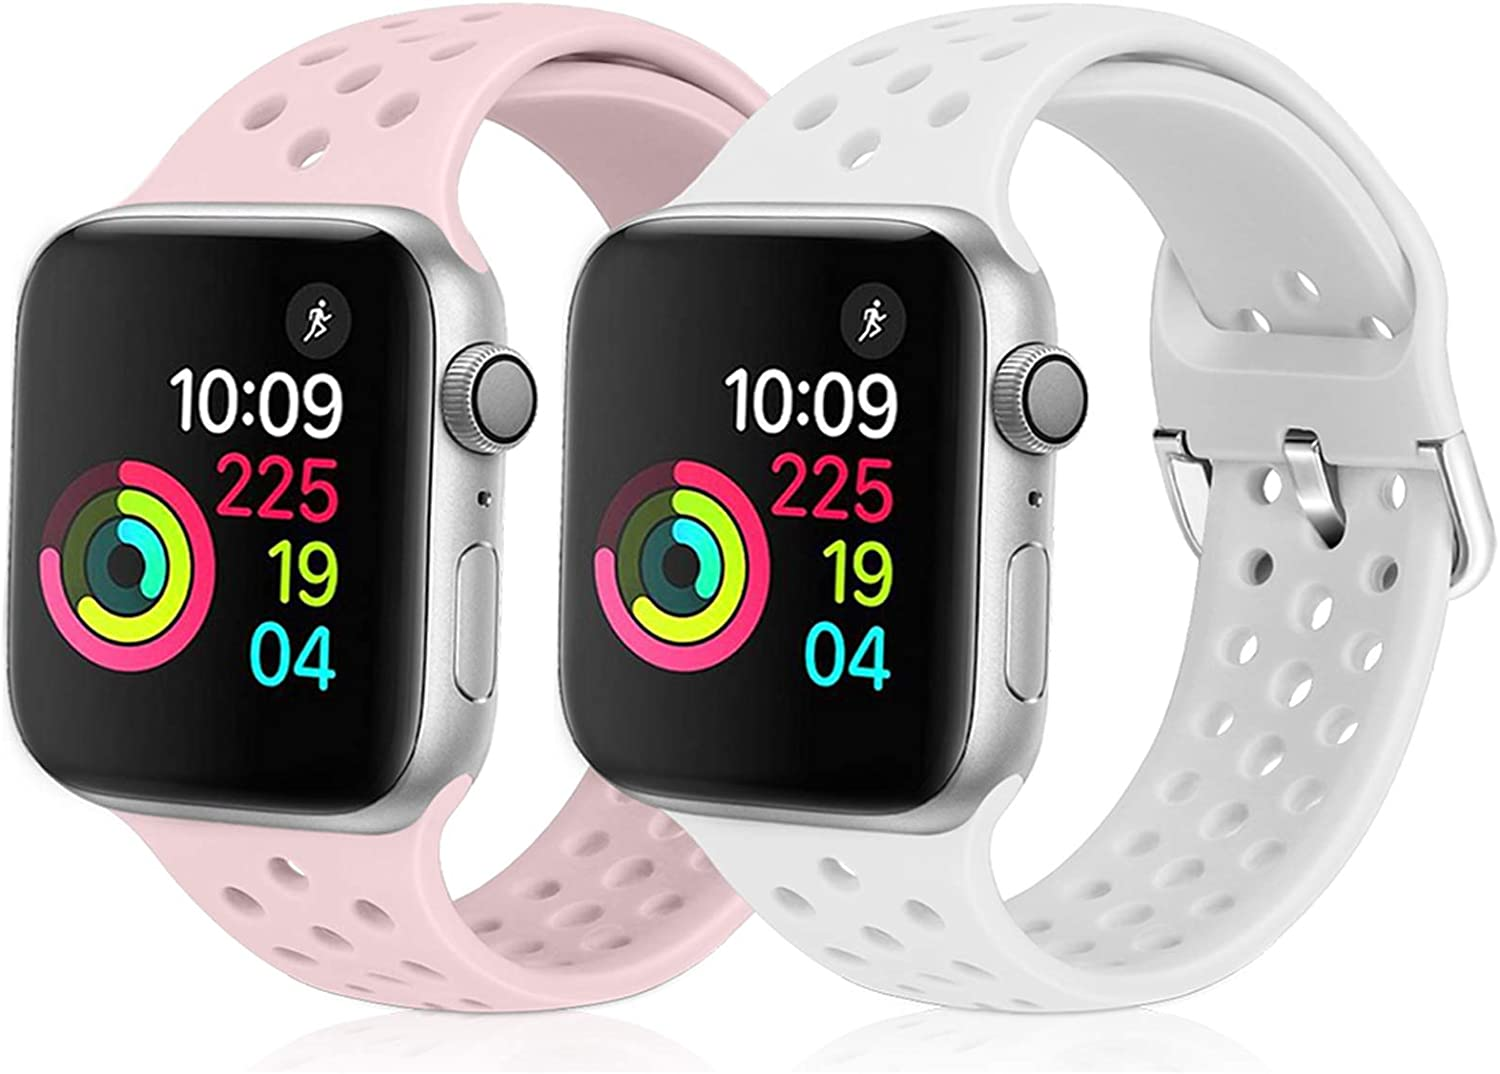 XFYELE Compatible with Apple Watch Band 38mm 40mm, Soft Silicone Replacement Strap Compatible for iWatch Series 6, 5, 4, 3, 2, 1 for Women and Men (White & Pink Sand, 38mm/40mm)